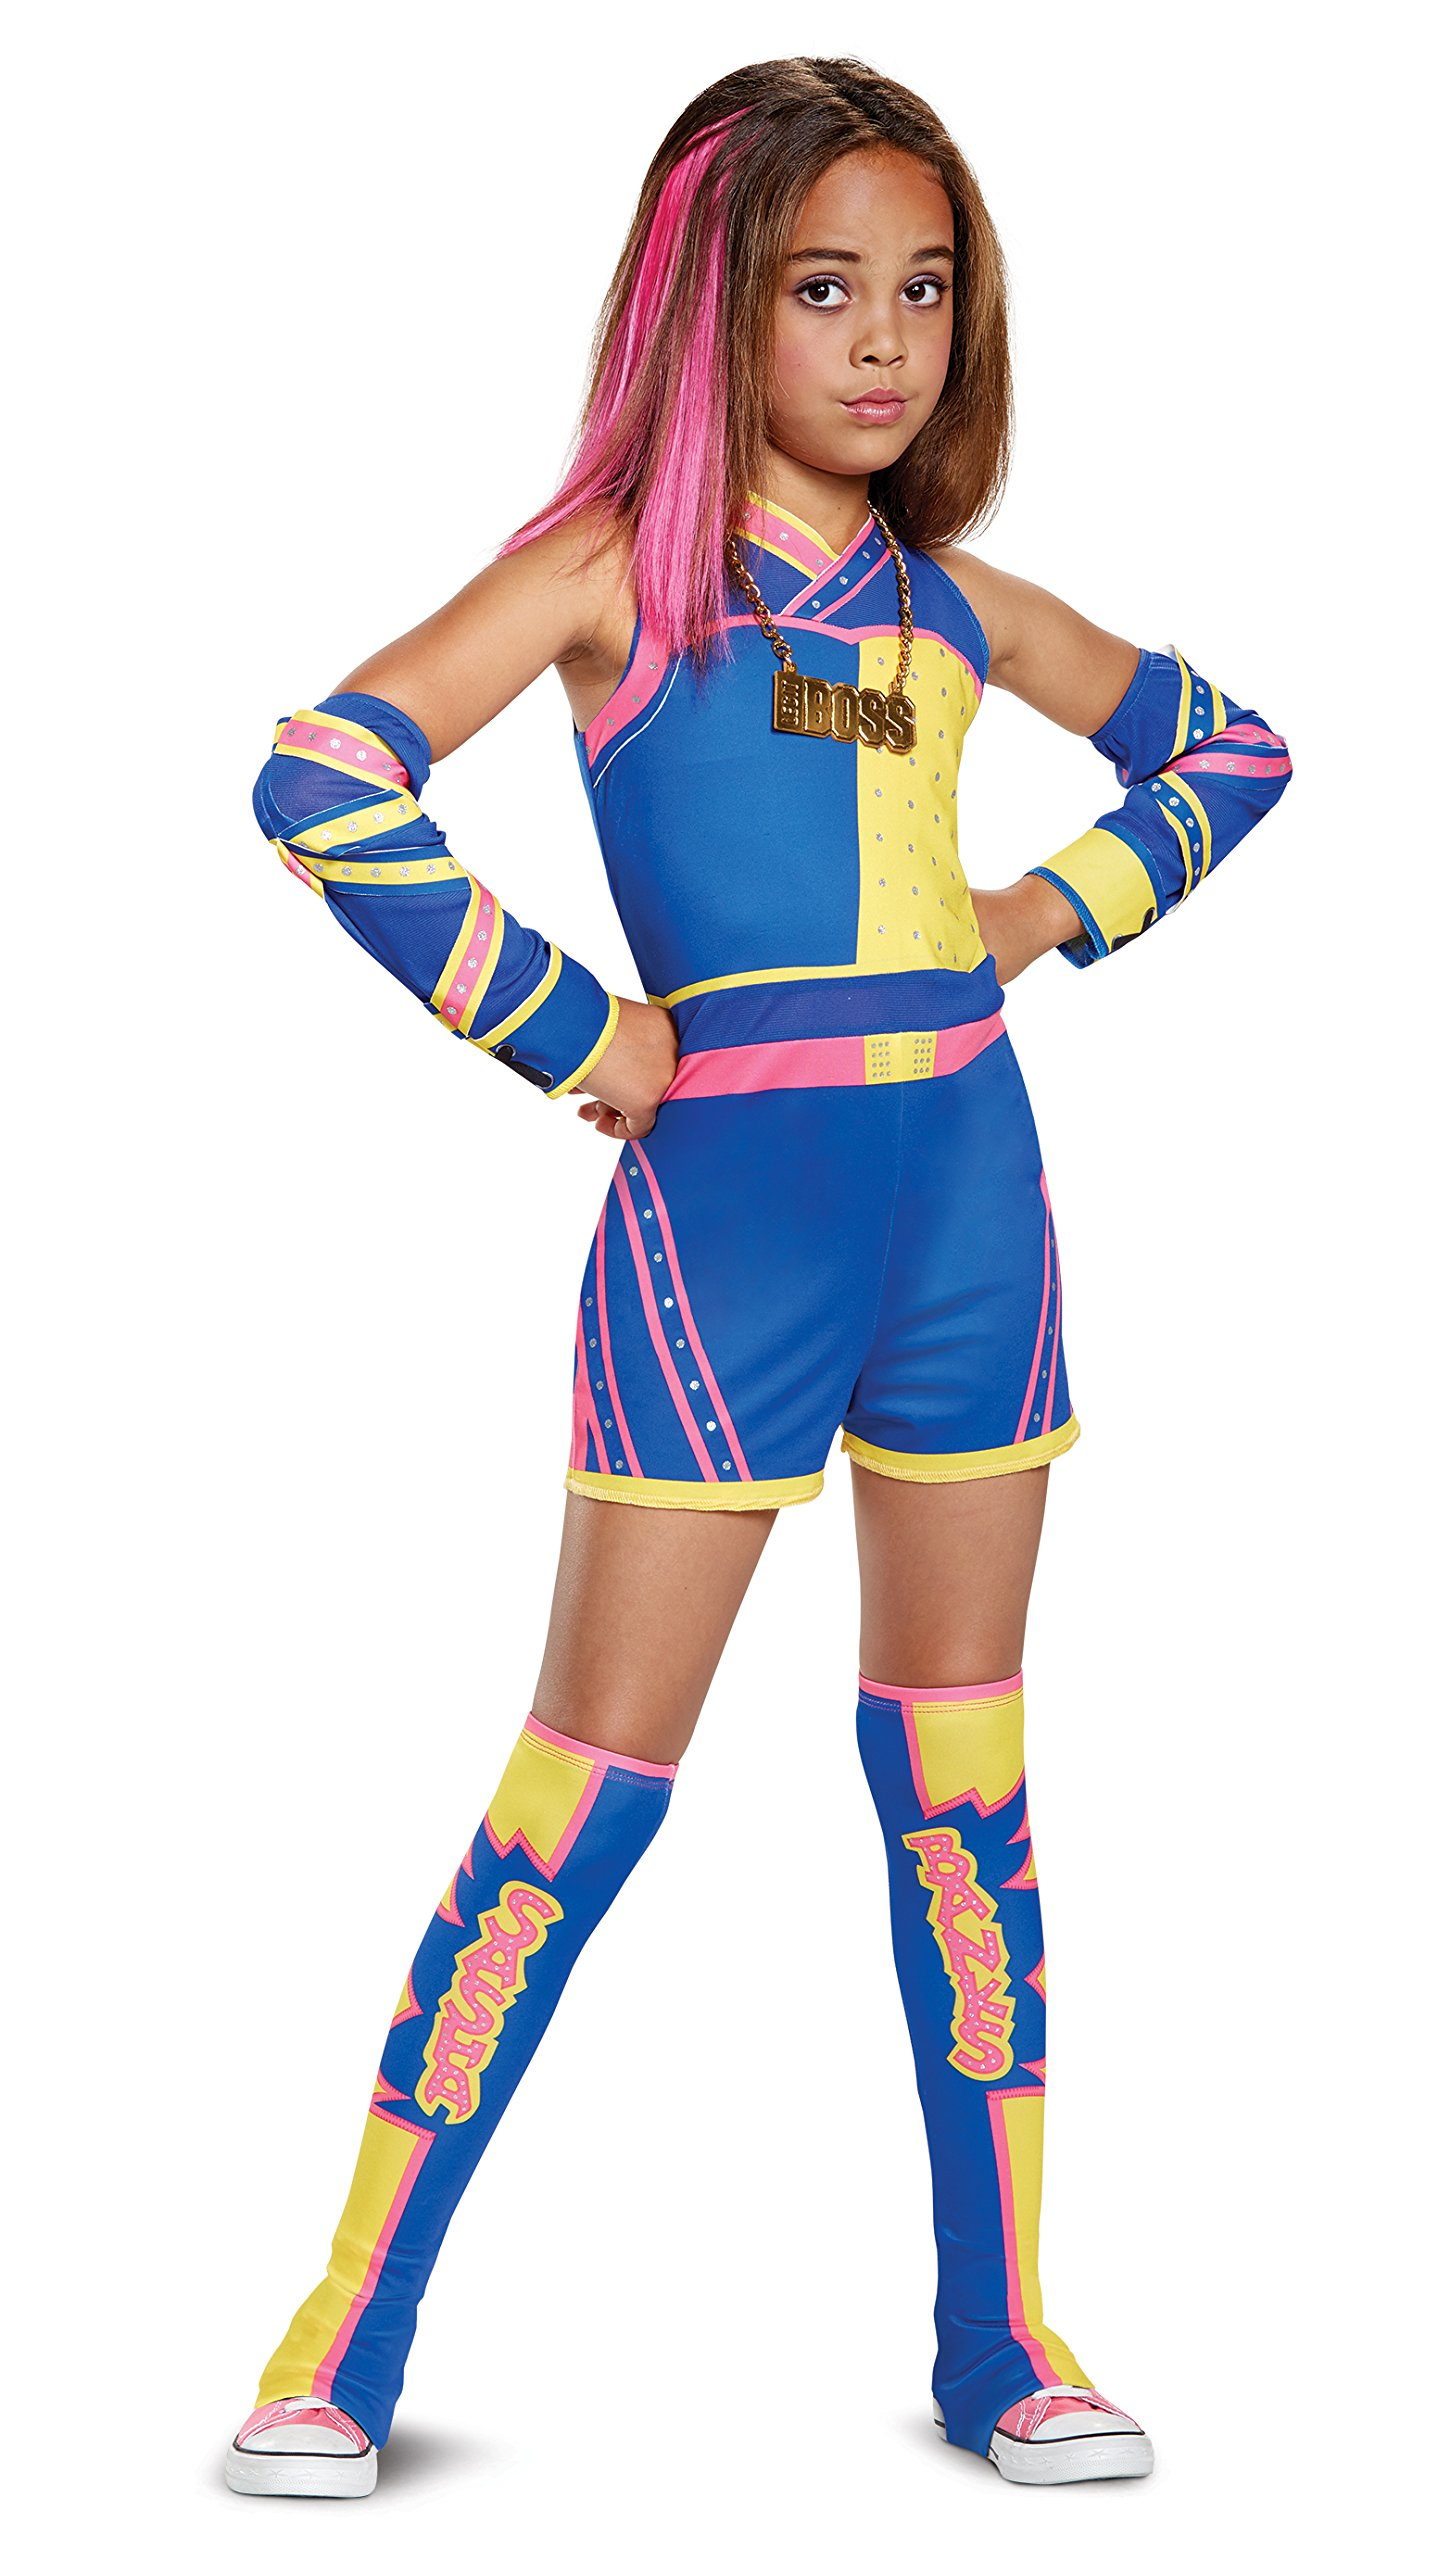 Sasha Banks Deluxe WWE Costume, Multicolor, Large (10-12)